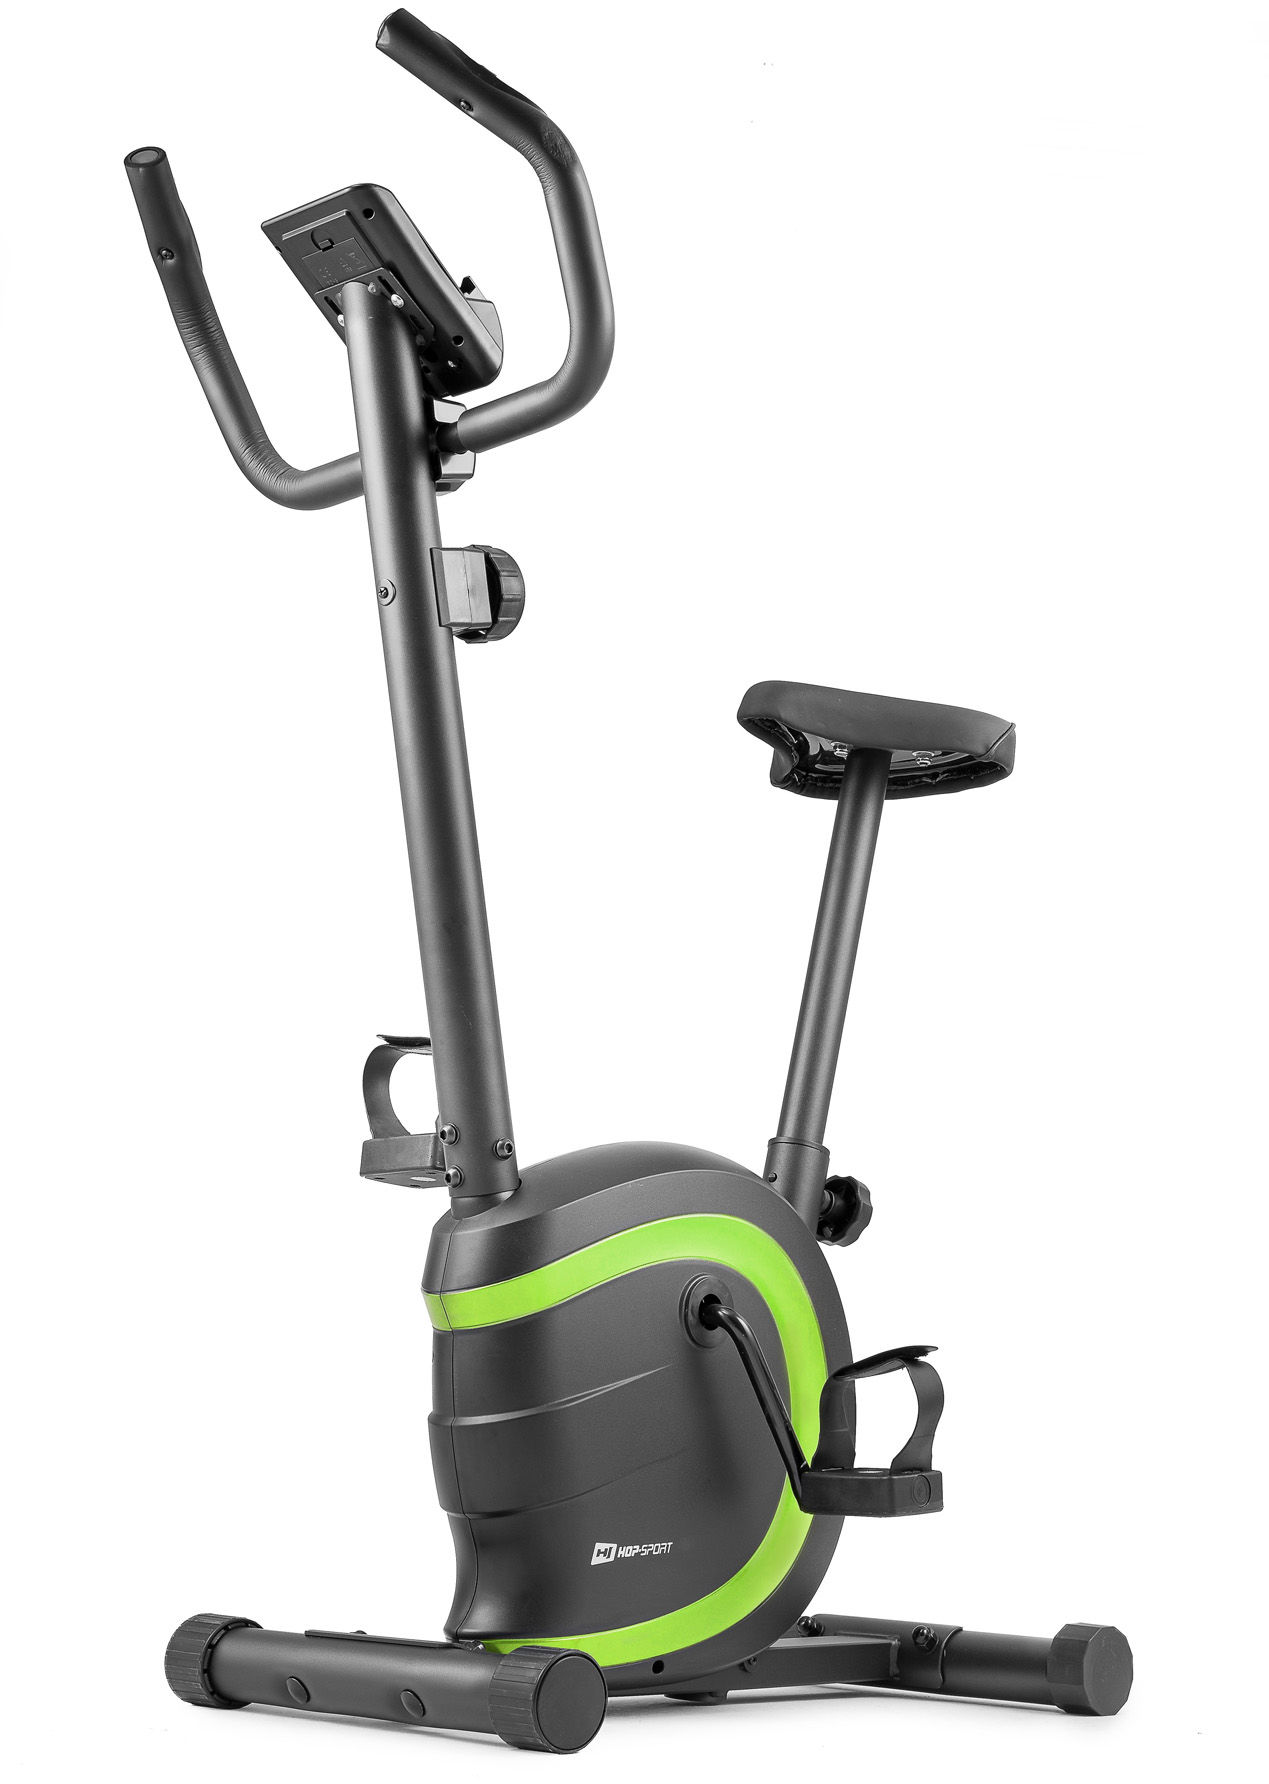 Rower magnetyczny HS-015H Vox Limonkowy